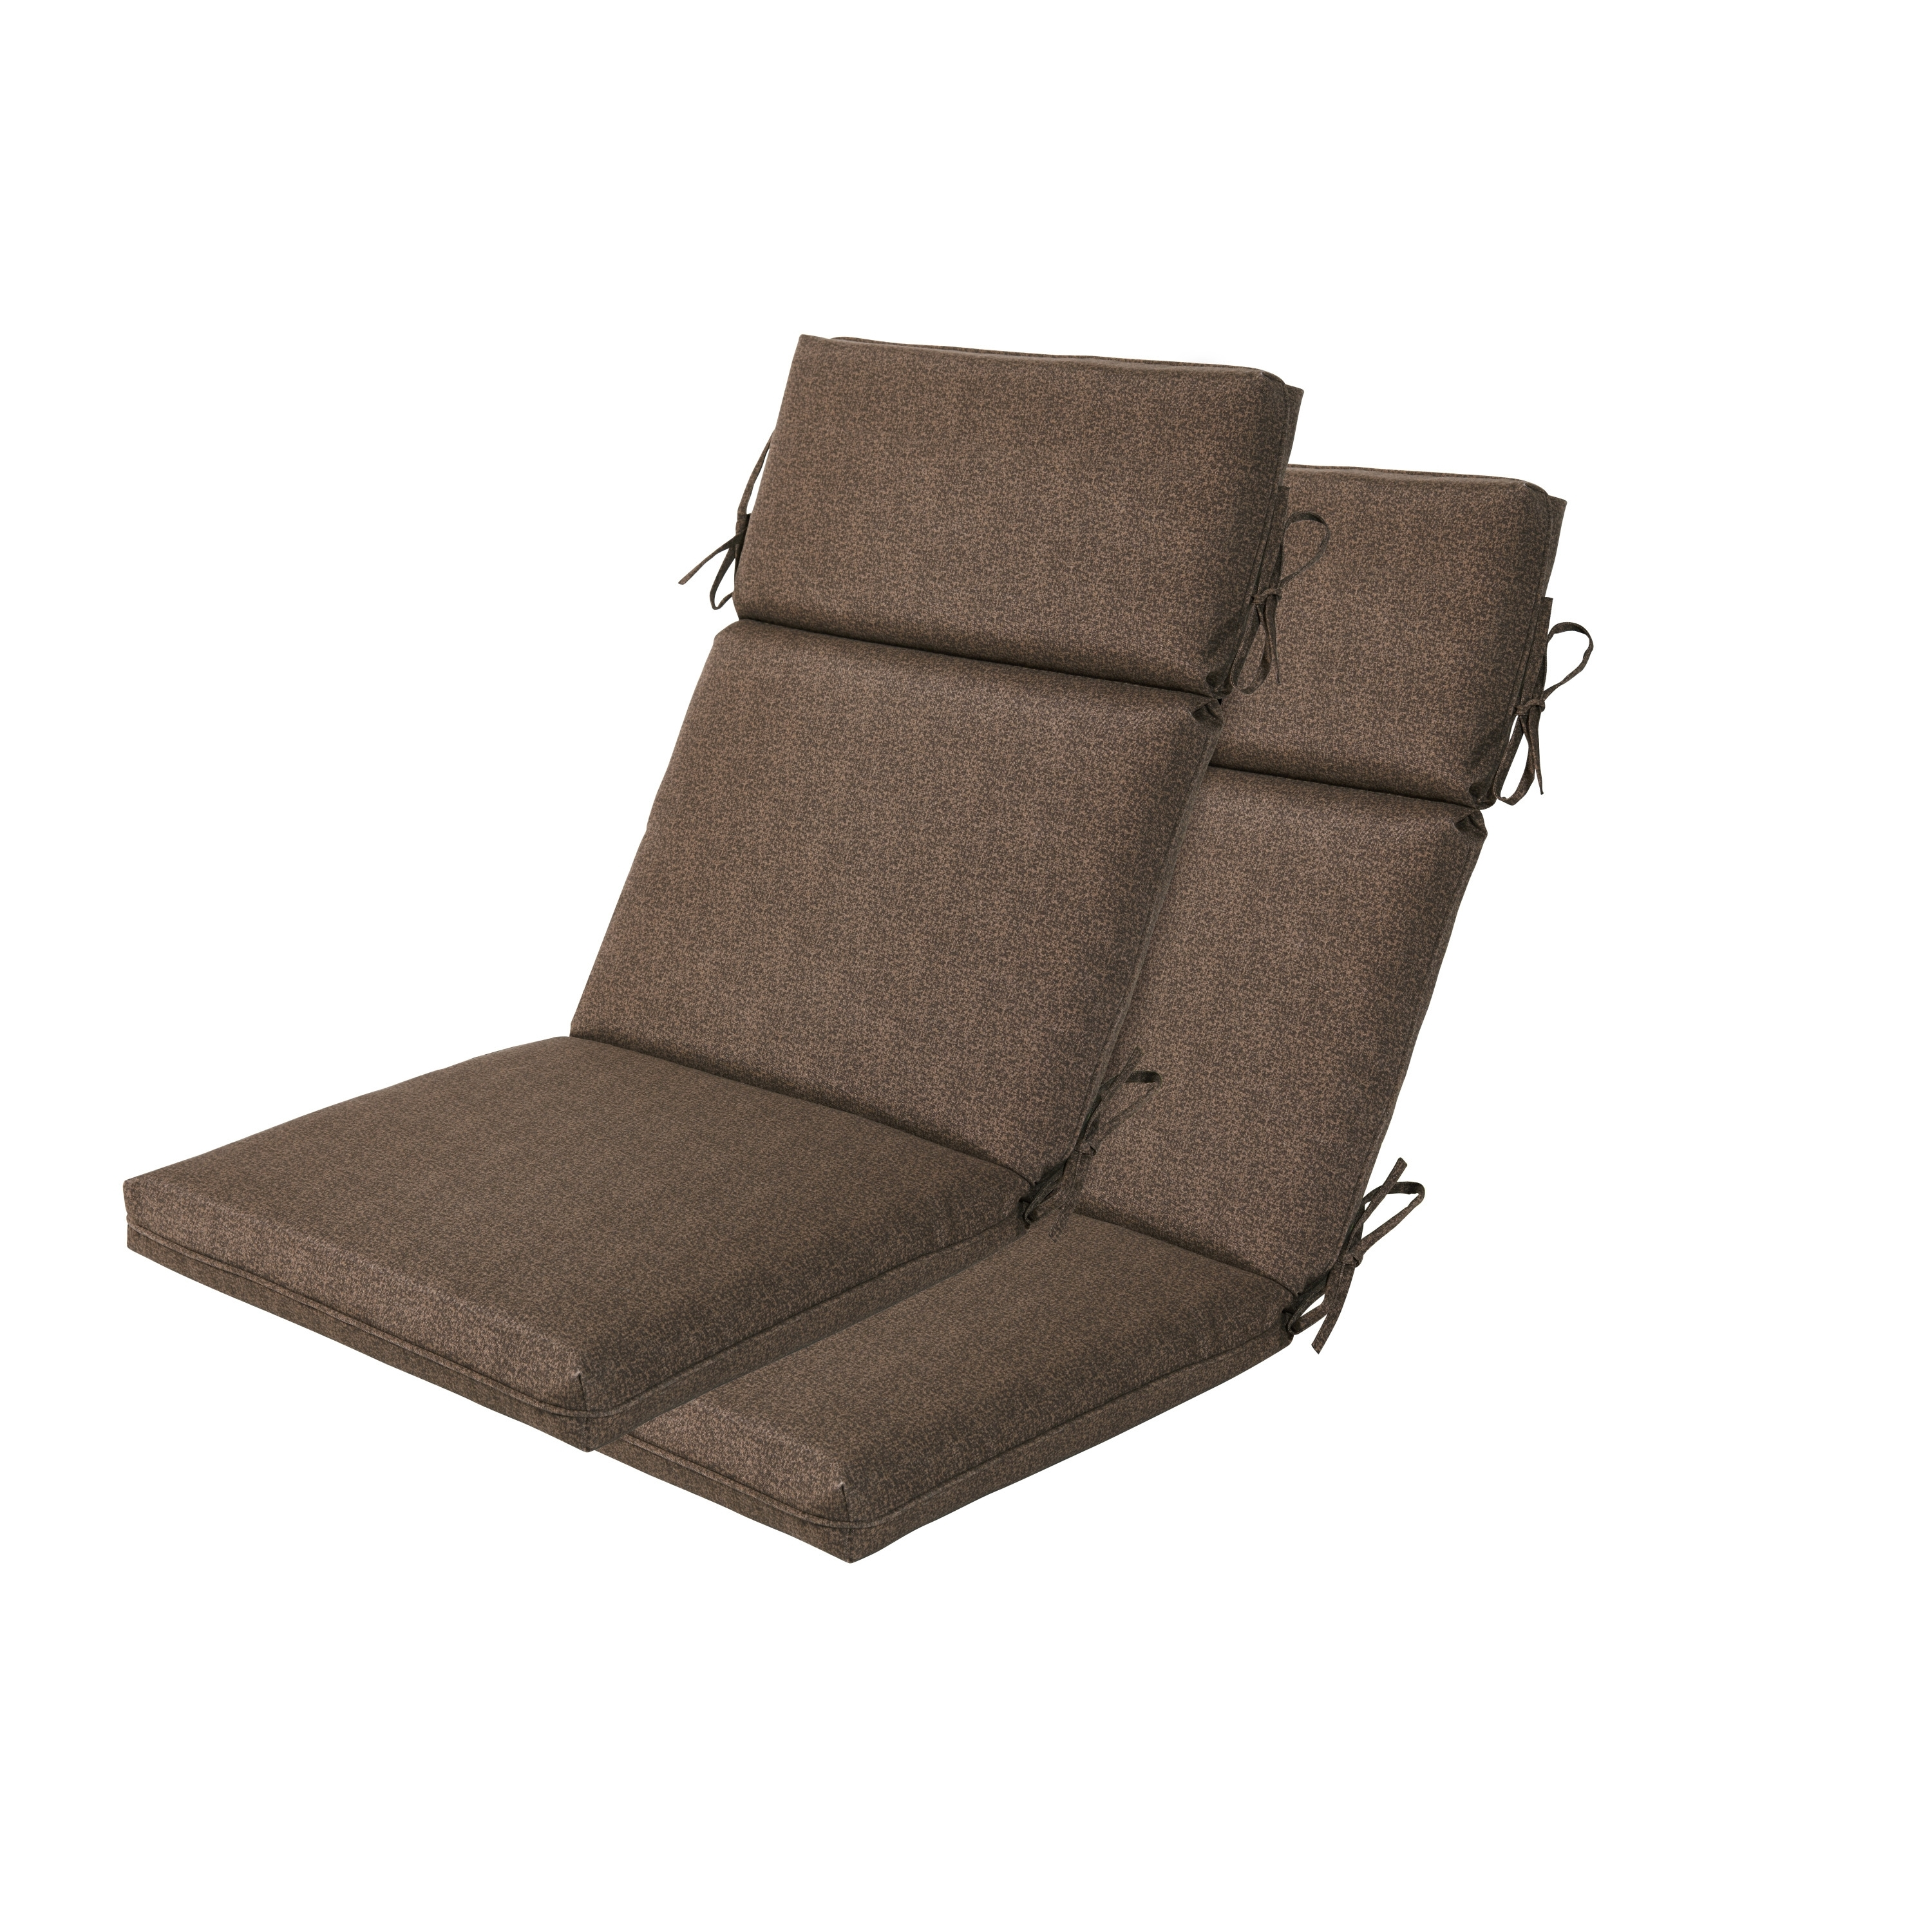 Target Chaise Lounge Cushions Inside Most Popular Outdoor : Chaise Lounge Cushions Clearance Discount Patio Cushions (View 14 of 15)